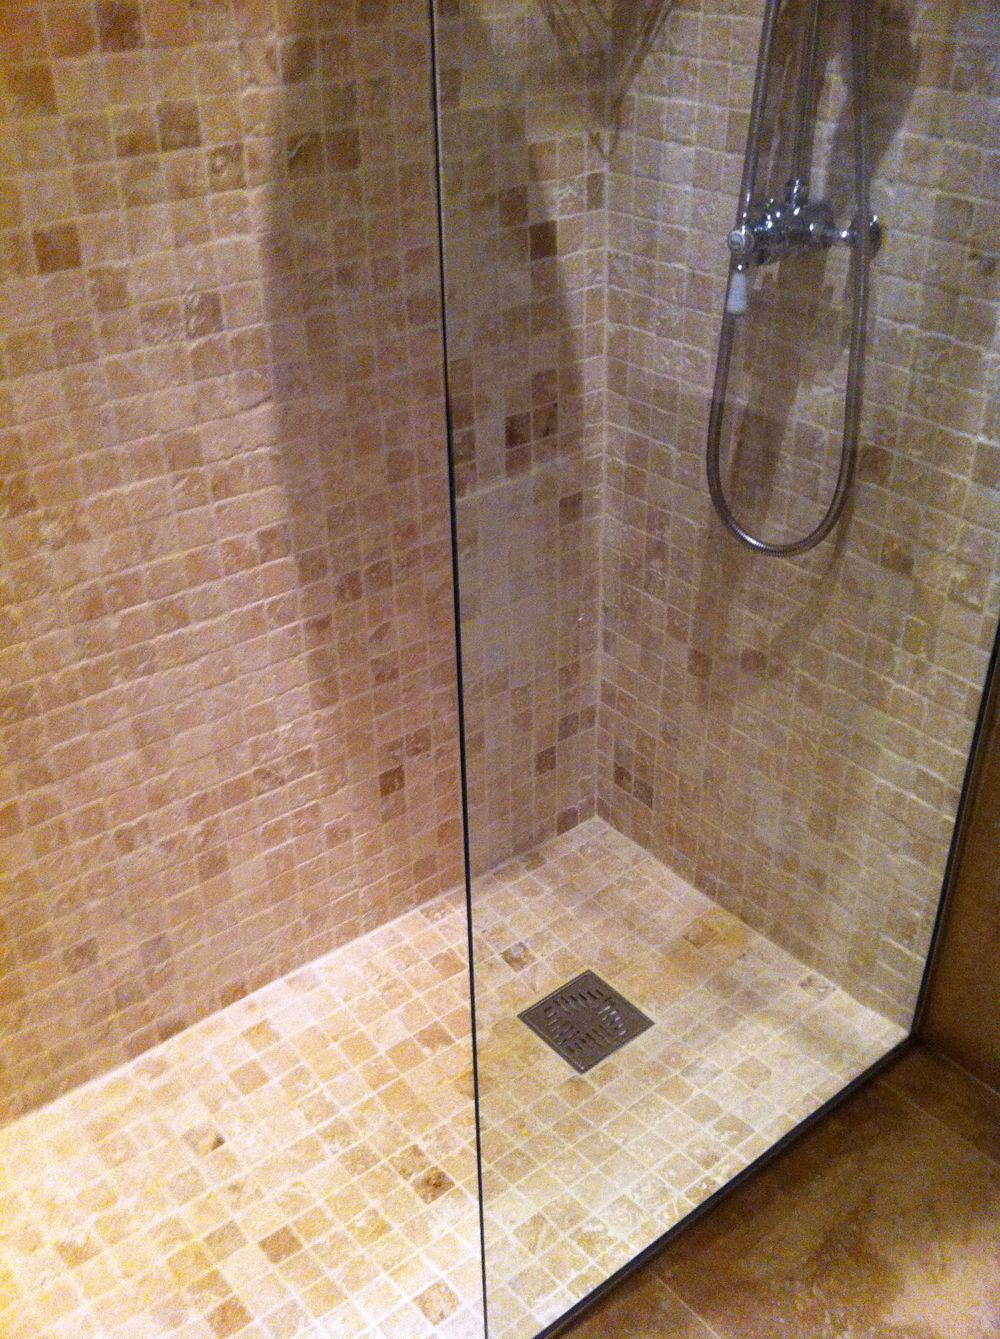 Wet room ideas bespoke wet room designs picture 559 preview wet room ideas bespoke wet room designs picture 559 preview dailygadgetfo Choice Image